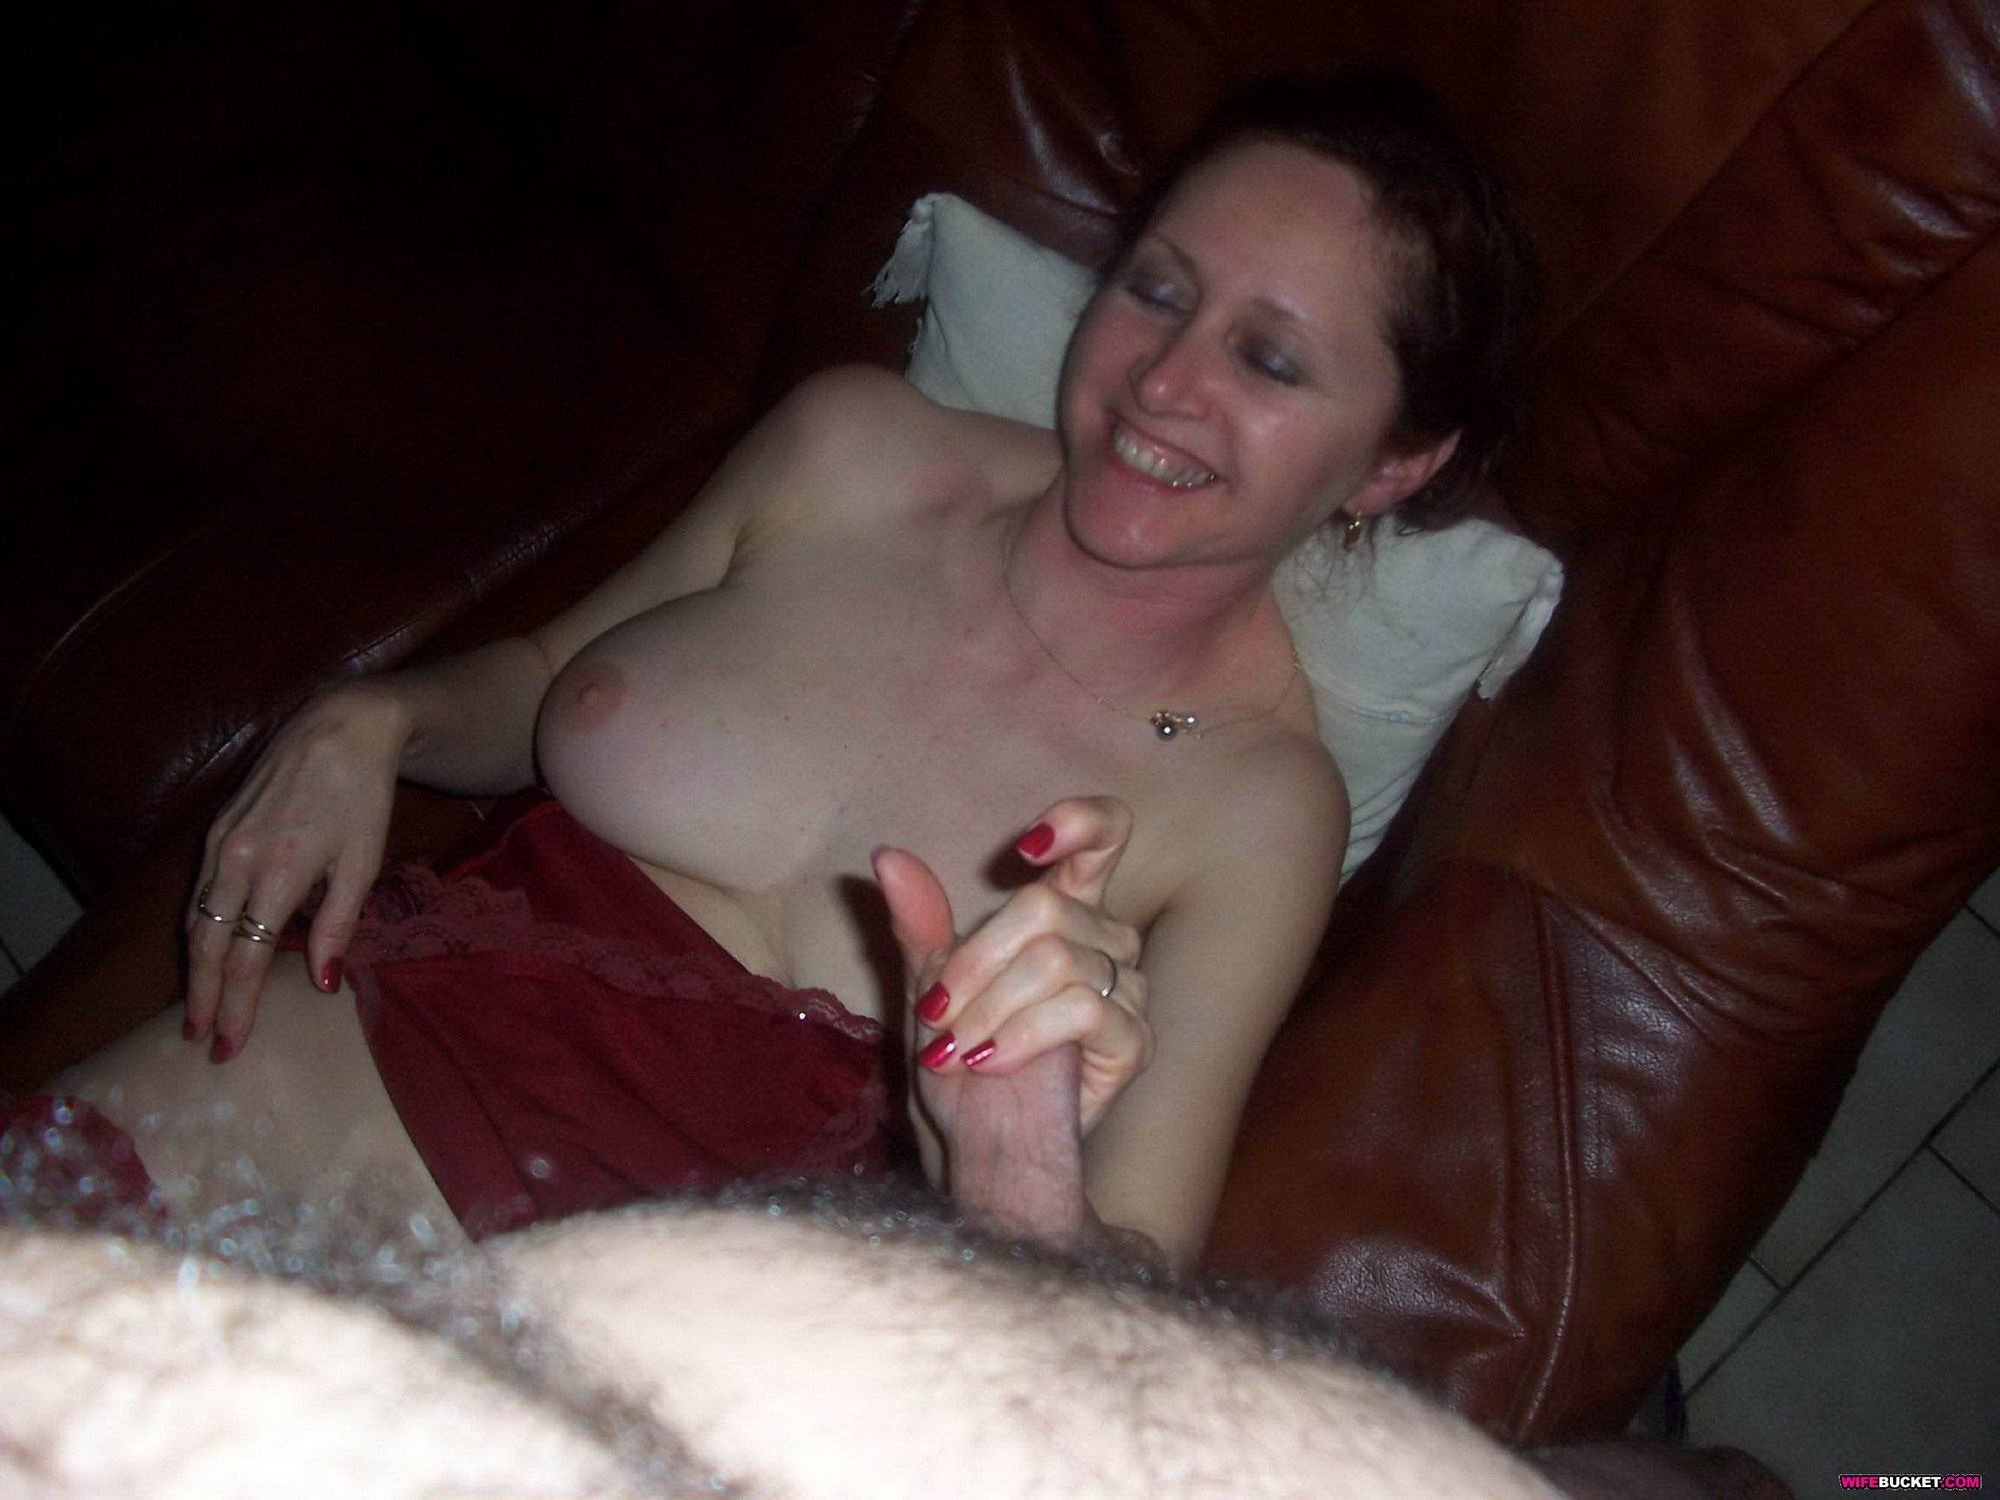 Xxx video live hd Milf amateur amazing